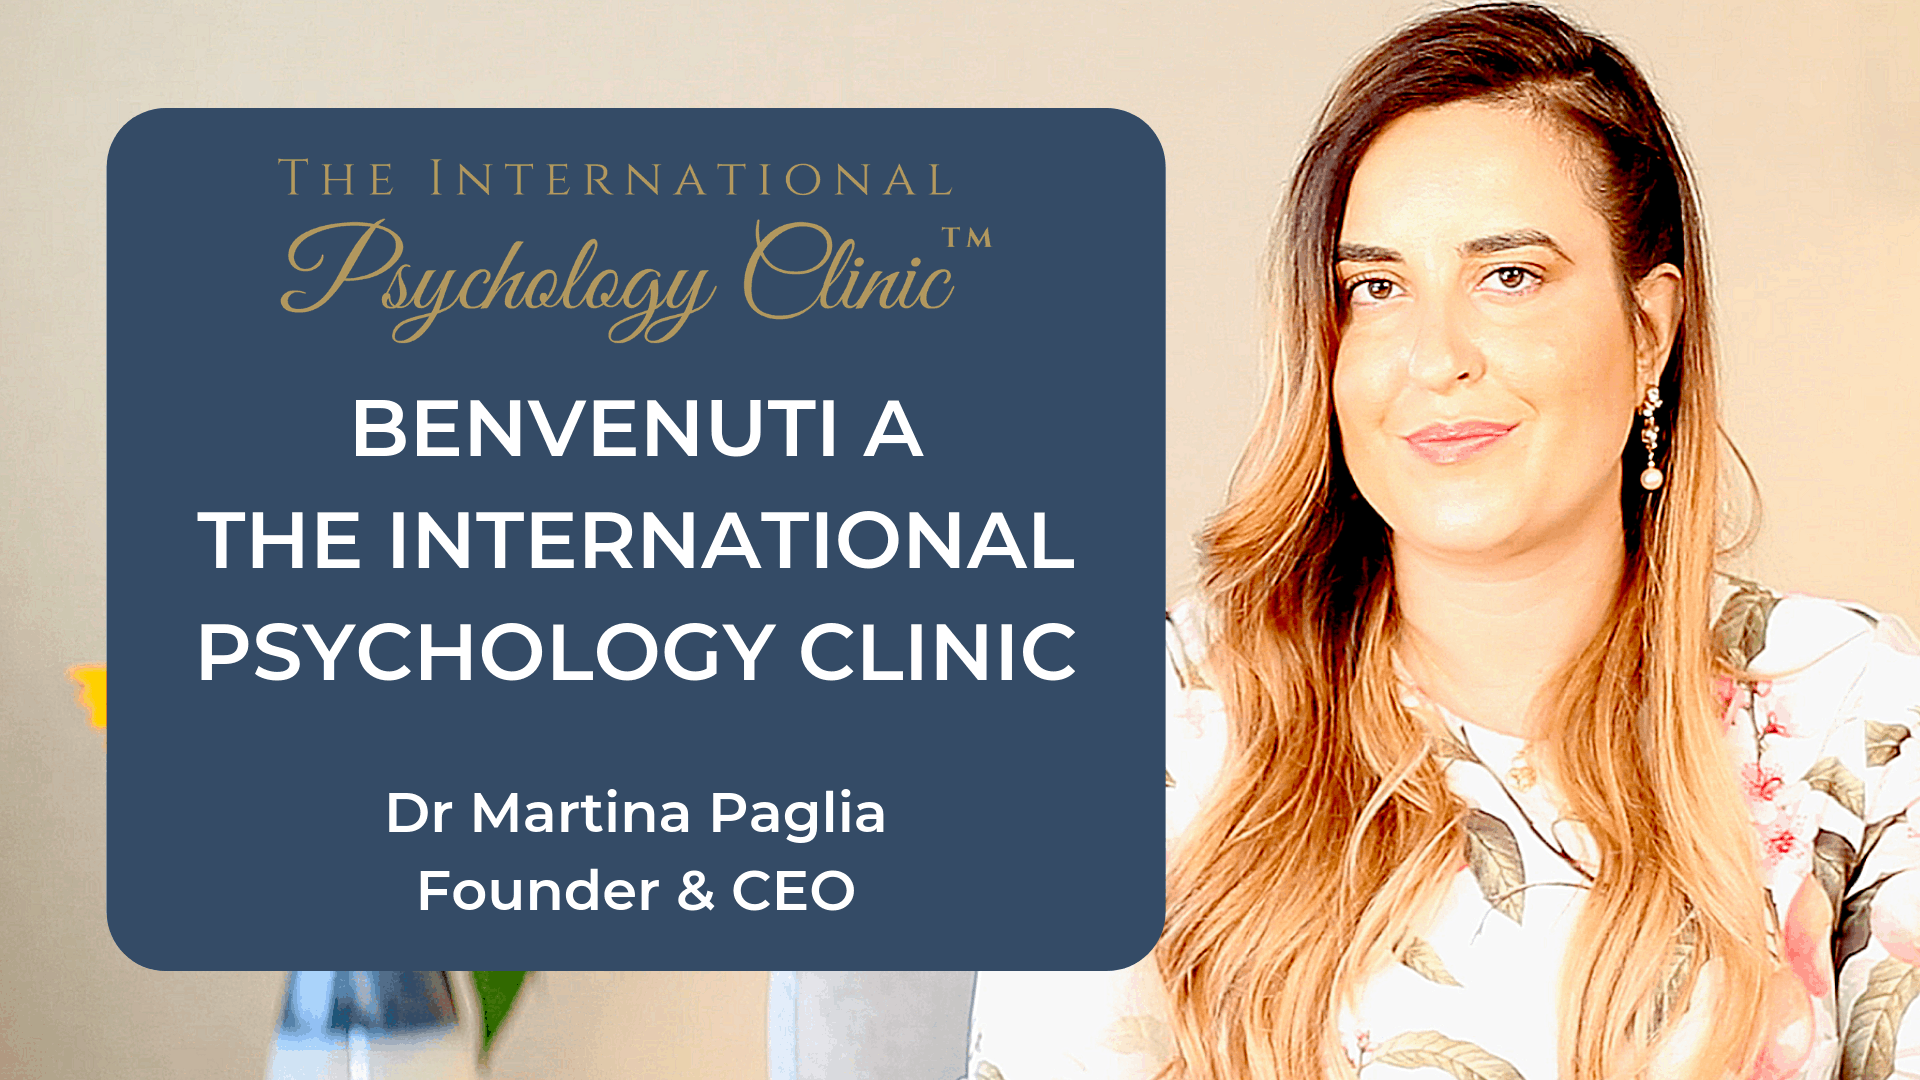 benvenuti a the international psychology clinic